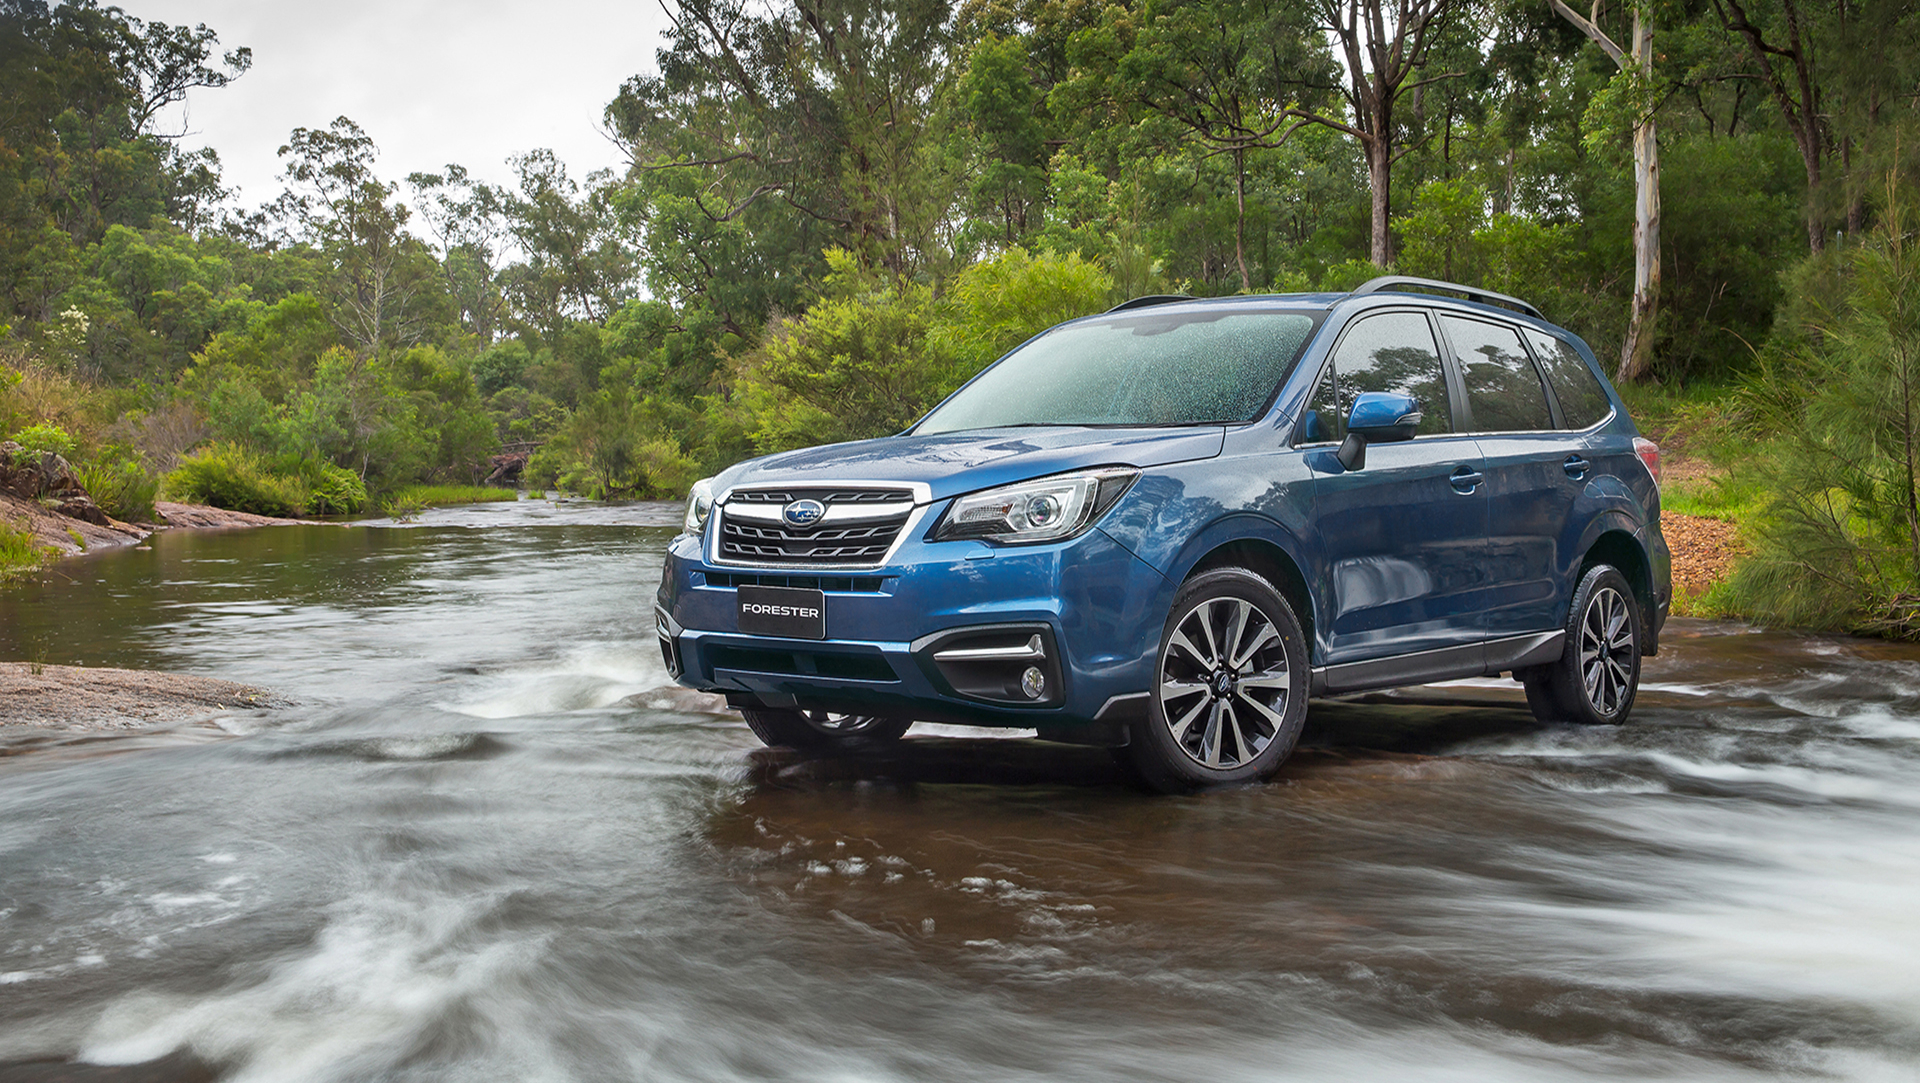 2022 Subaru Forester 2.5I-L Electric Range, Specification